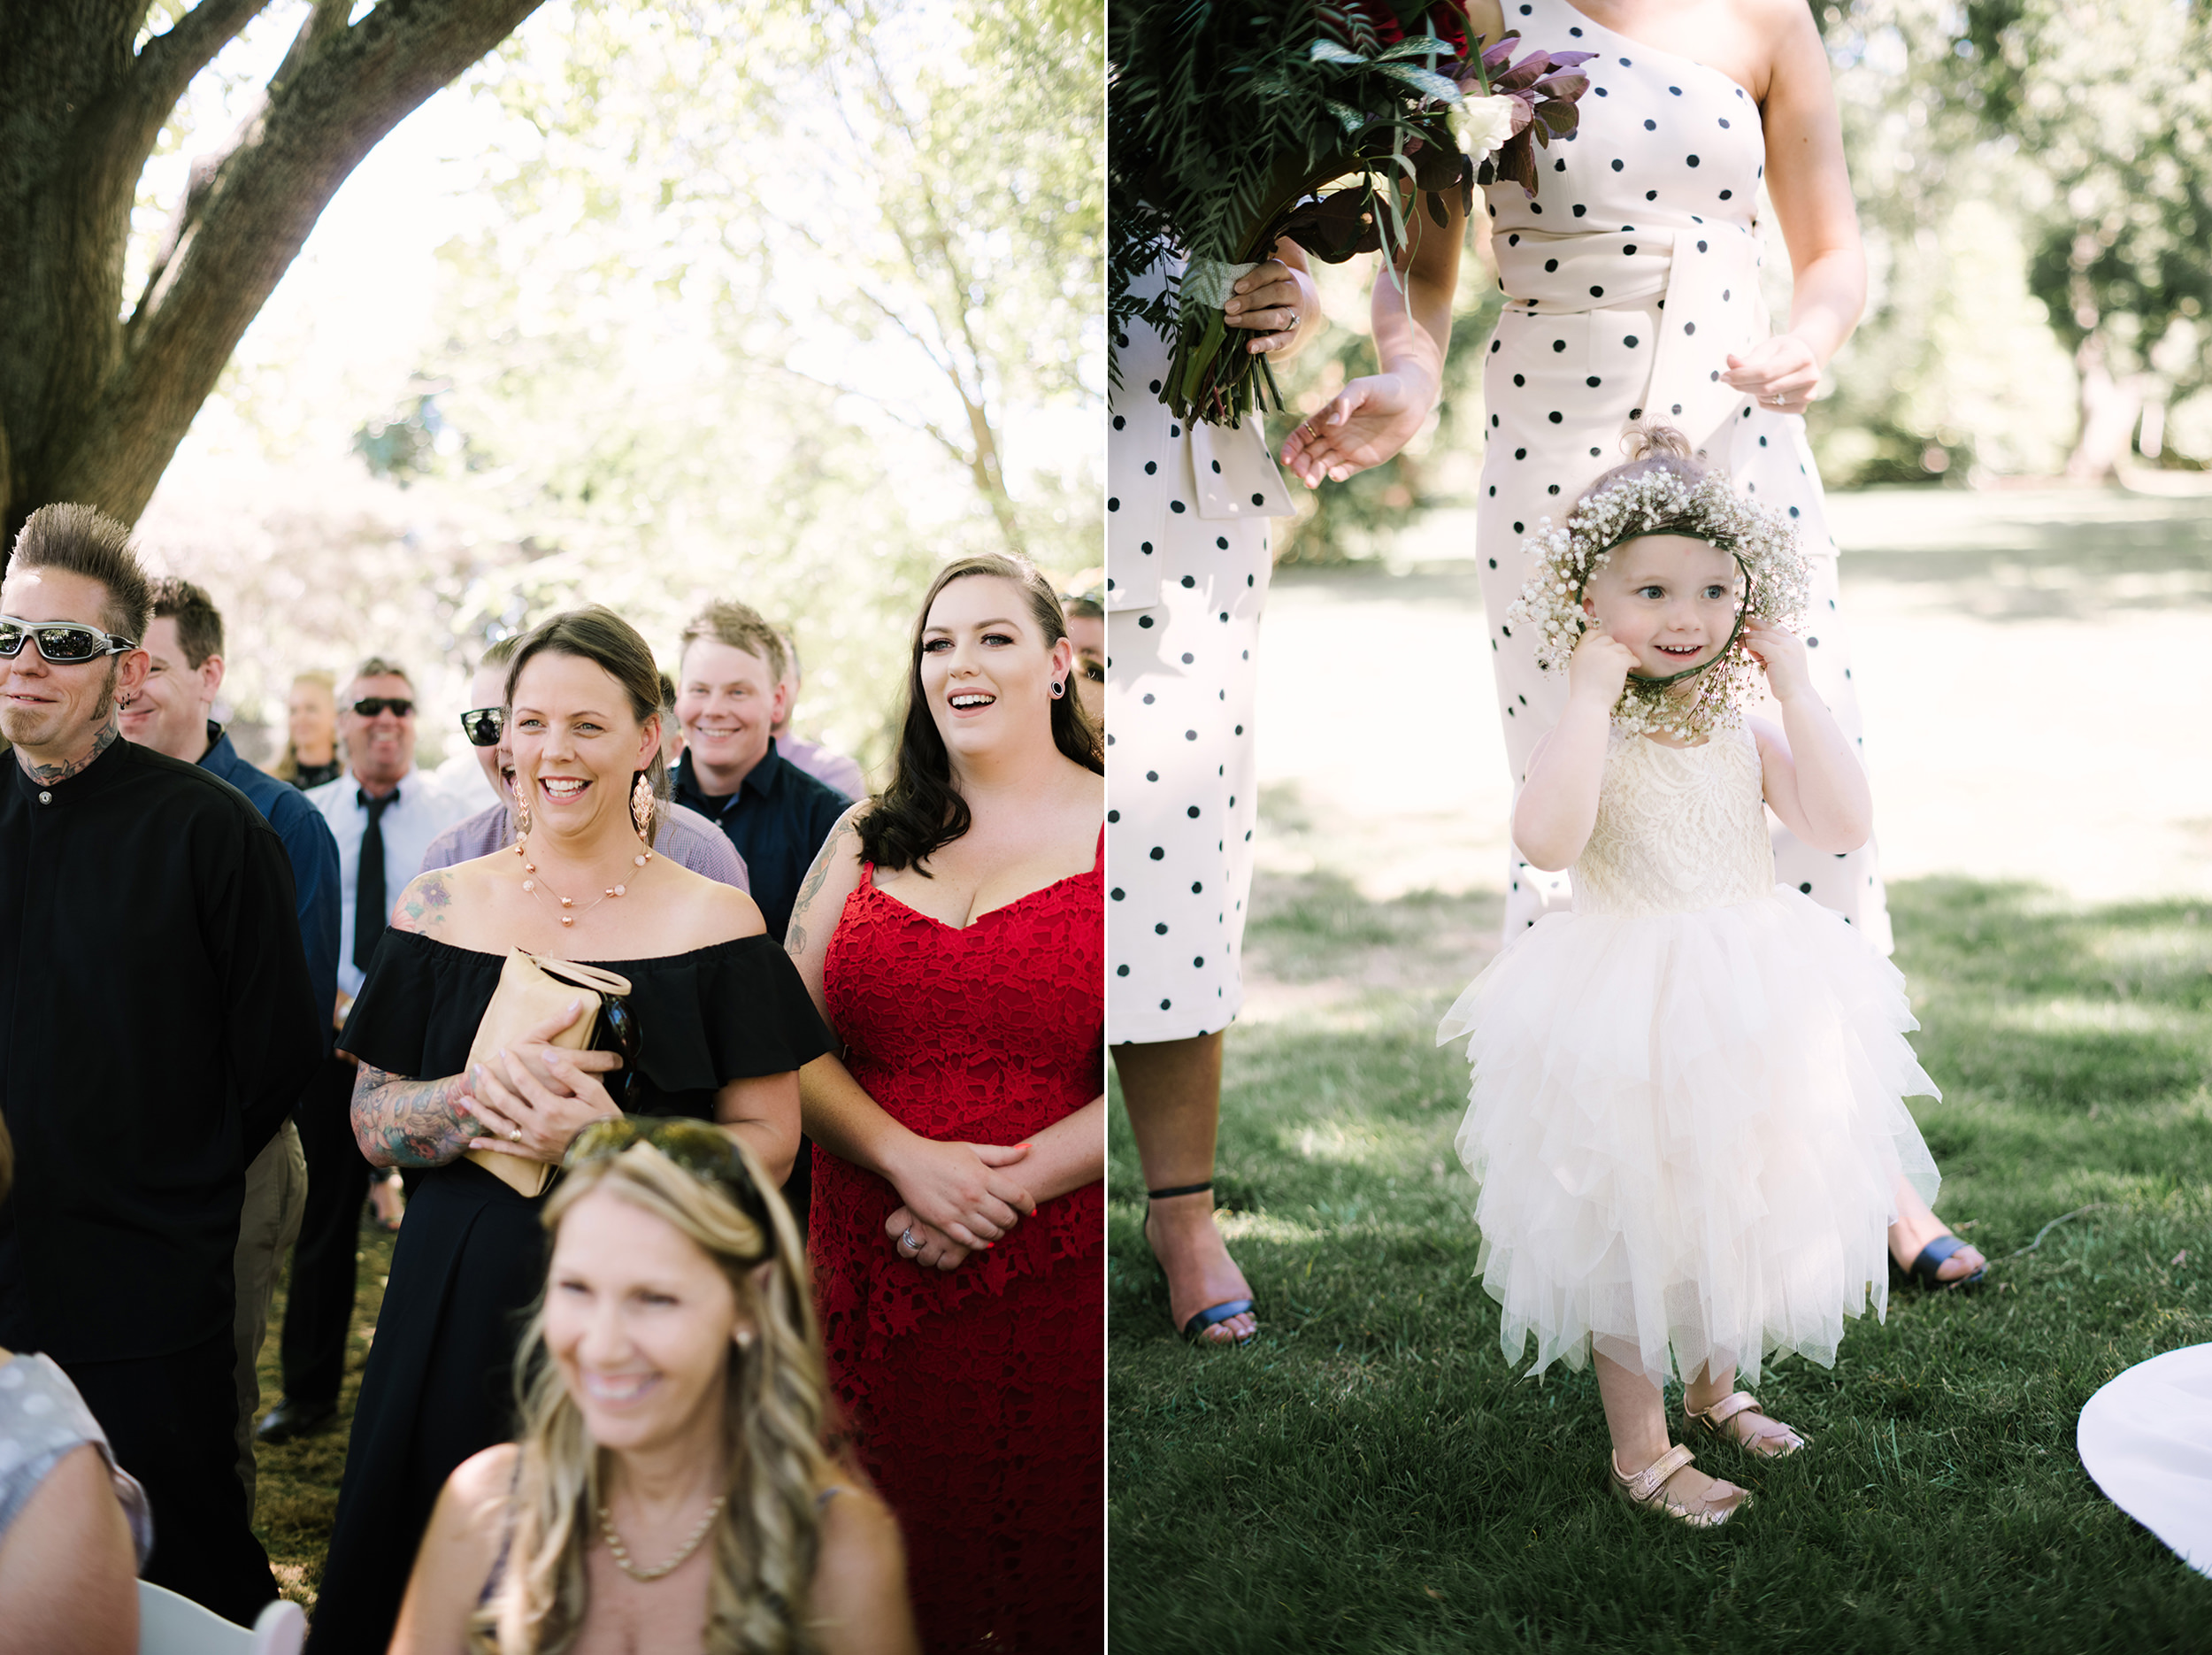 I_Got_You_Babe_Co._Megan_Andrew_Country_Property_Wedding_Victoria0037.JPG